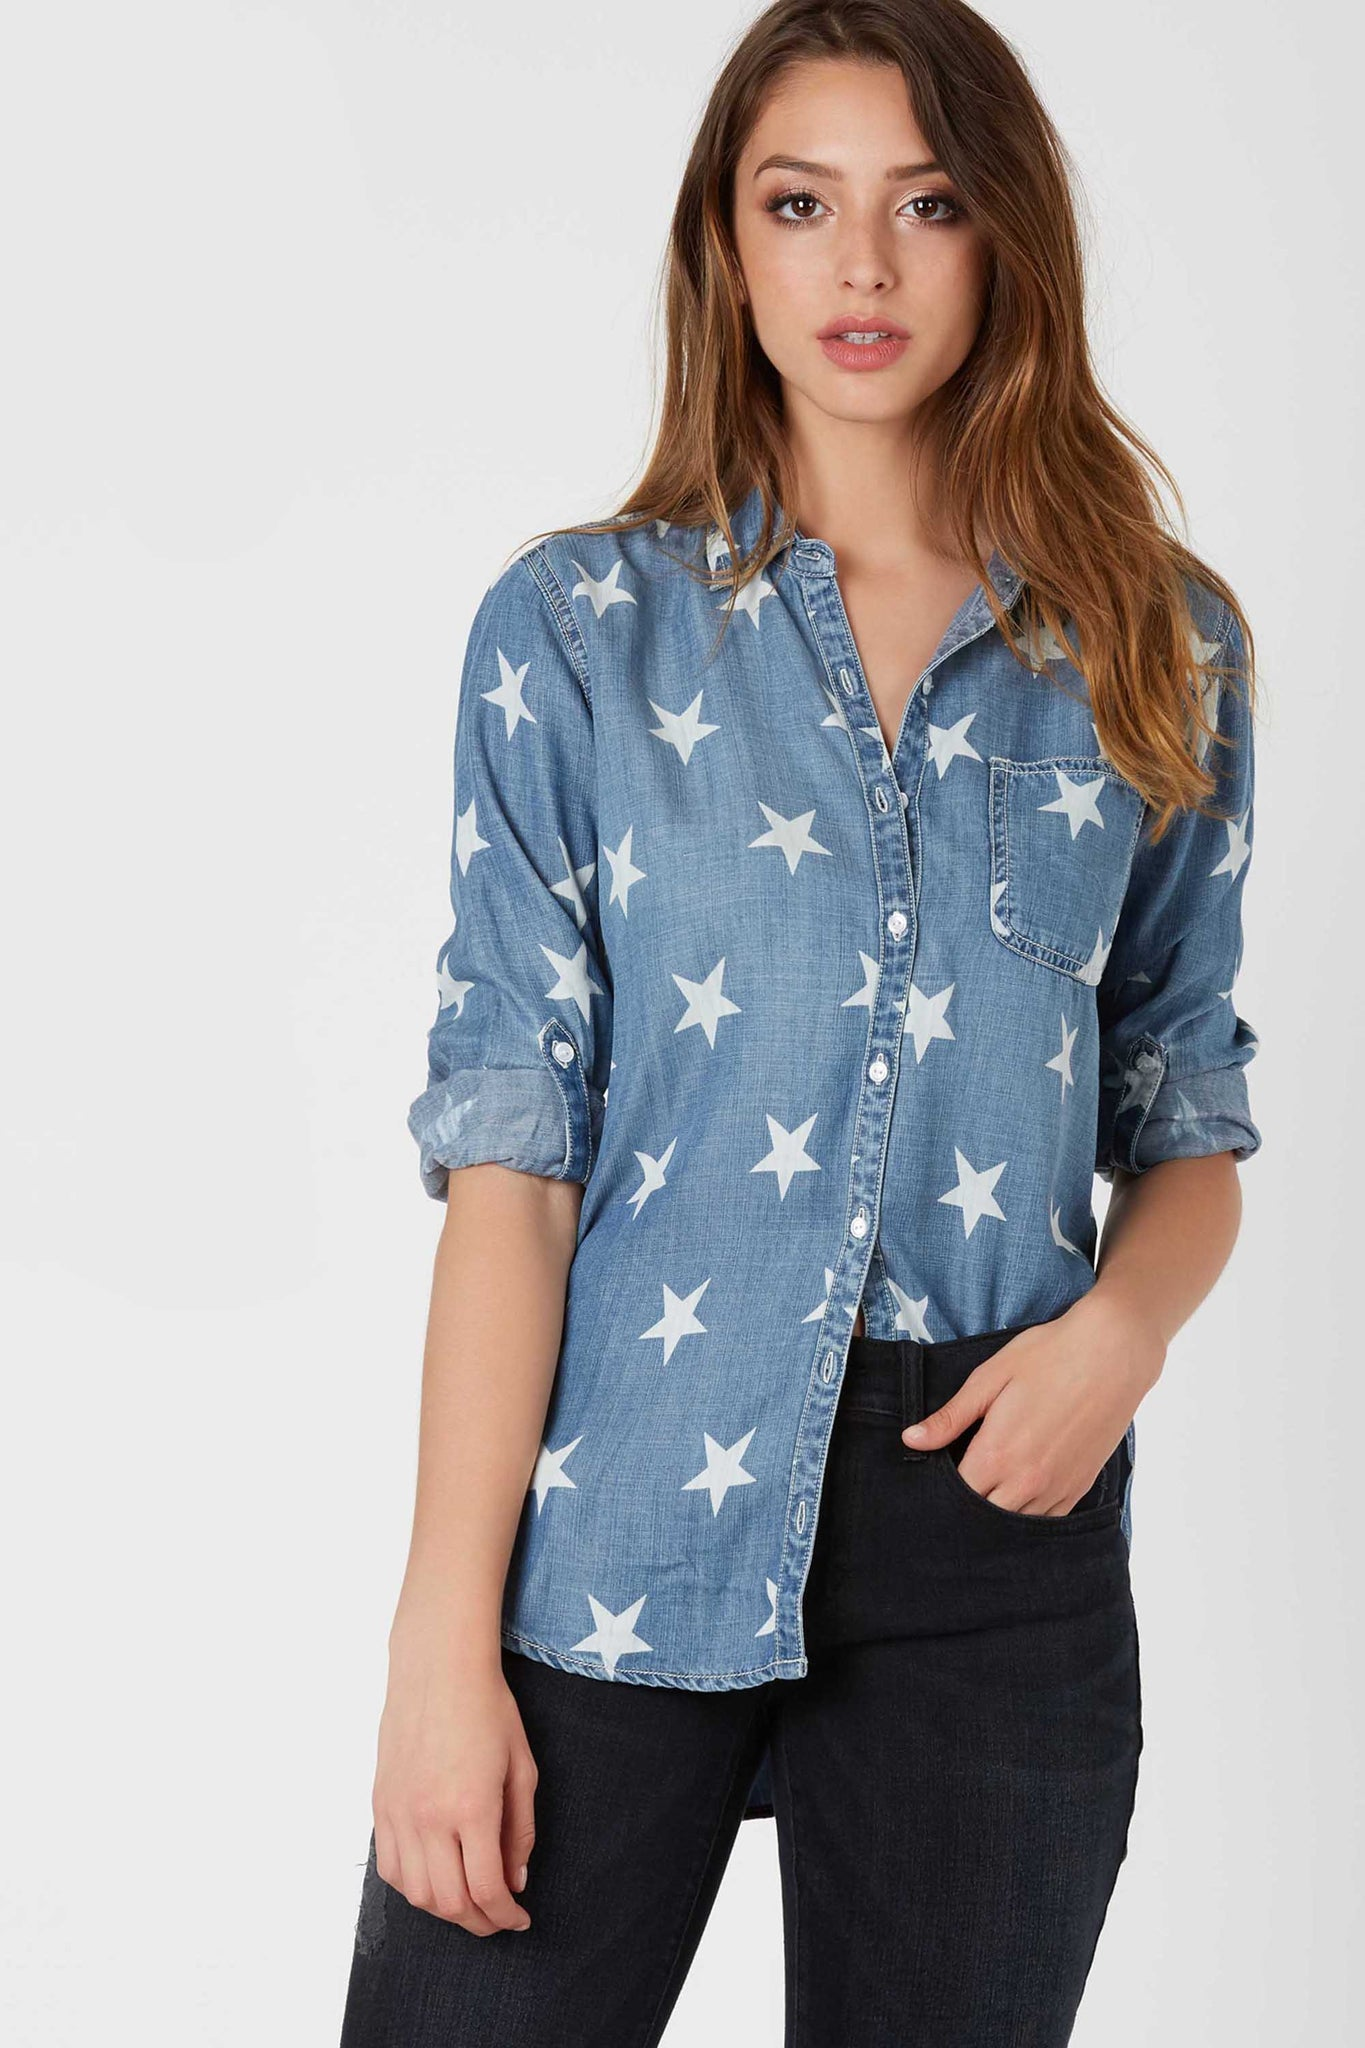 Casual chambray button down top with full length sleeves and classic collared design. Run start patterns throughout with curved hi-low hem.